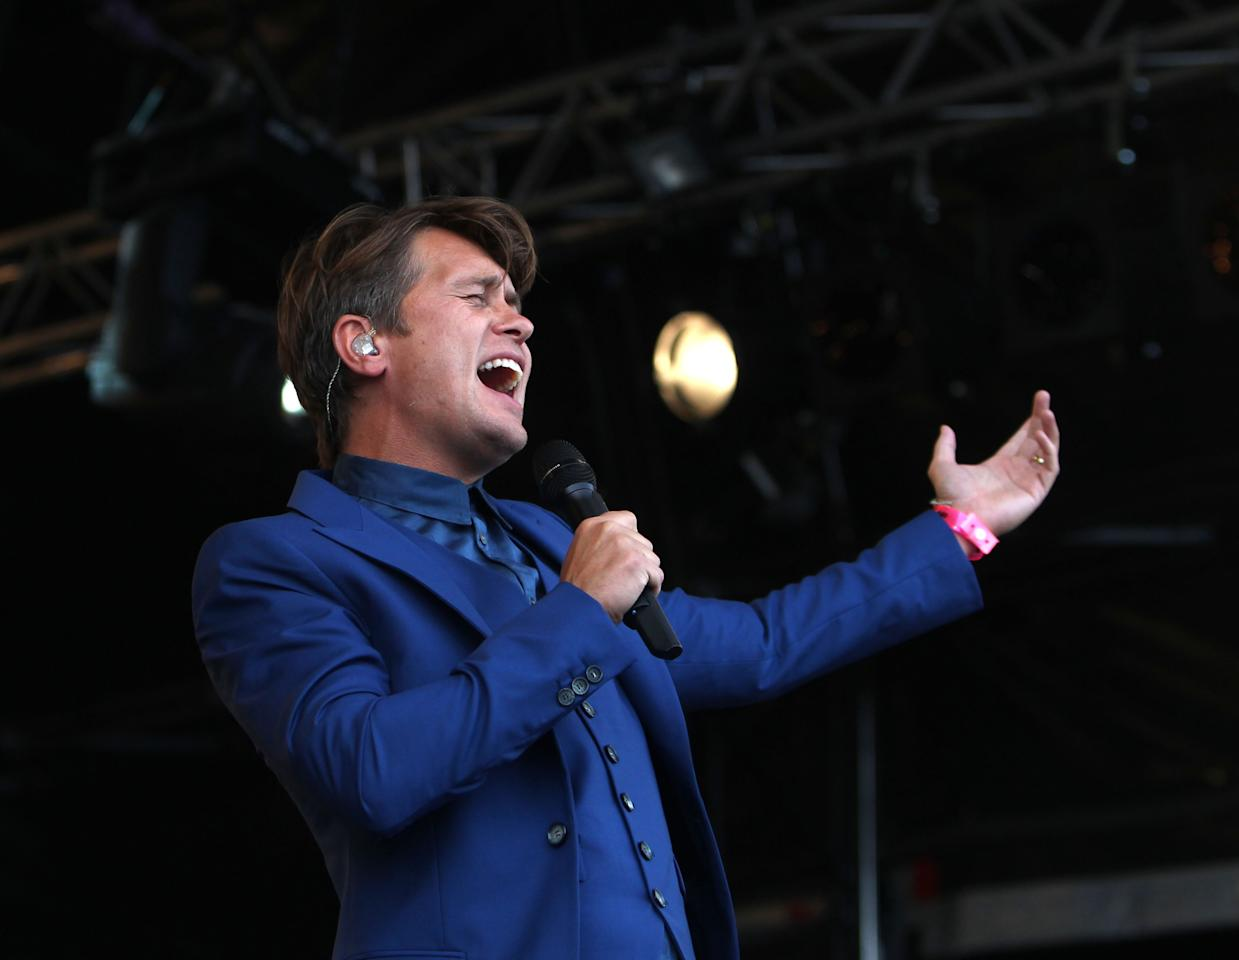 <p>Mark Owen has gone on to achieve a huge career revival thanks to several incredibly popular Take That reunion tours. He's also enjoyed success with several solo albums and new Take That albums. </p>